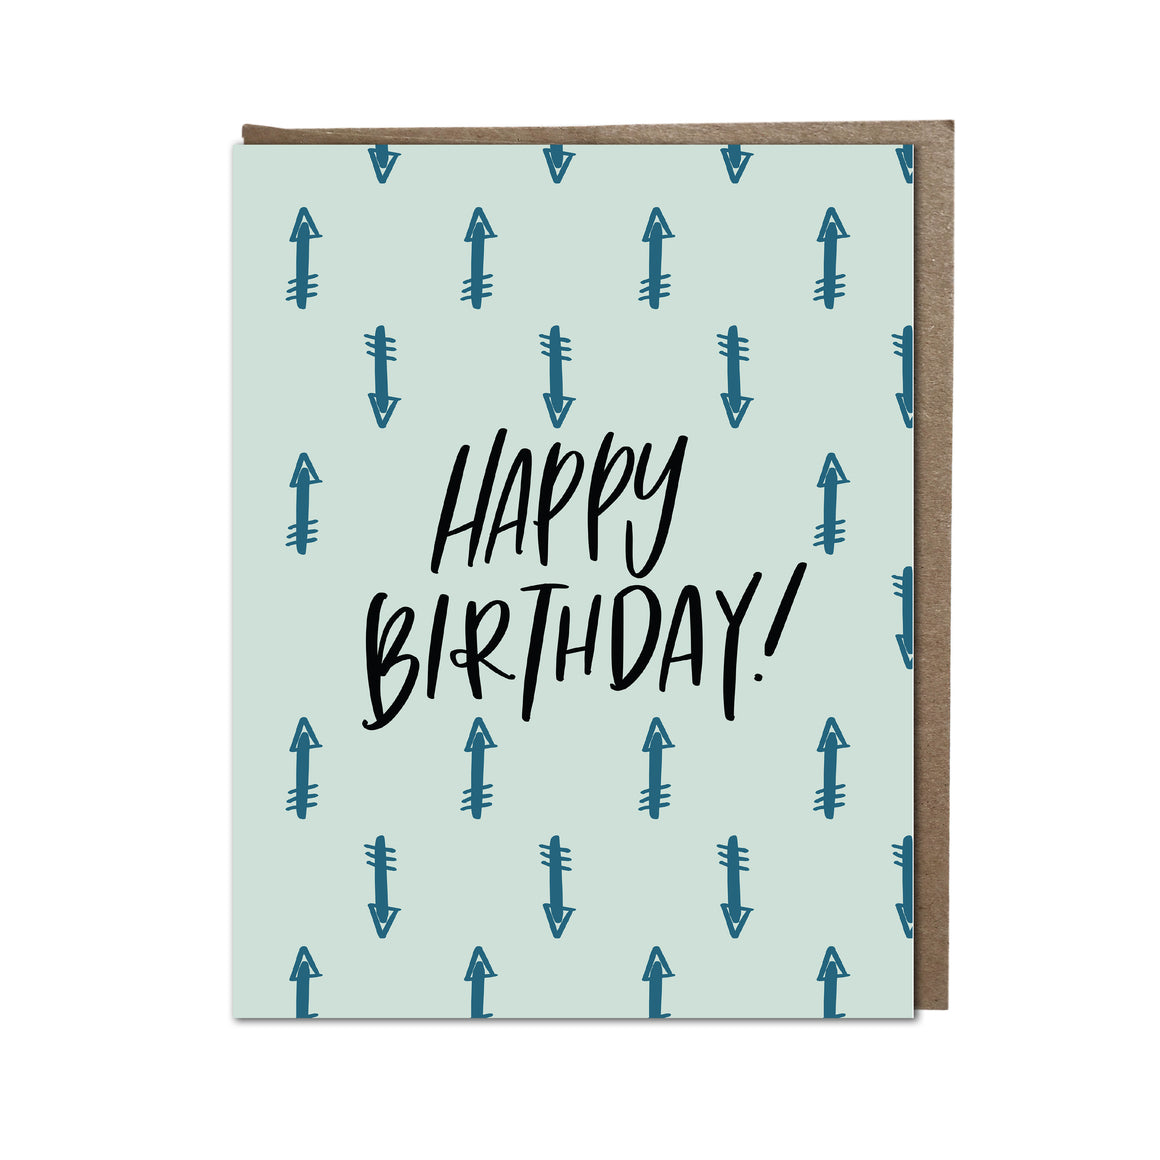 HBD-Arrows card